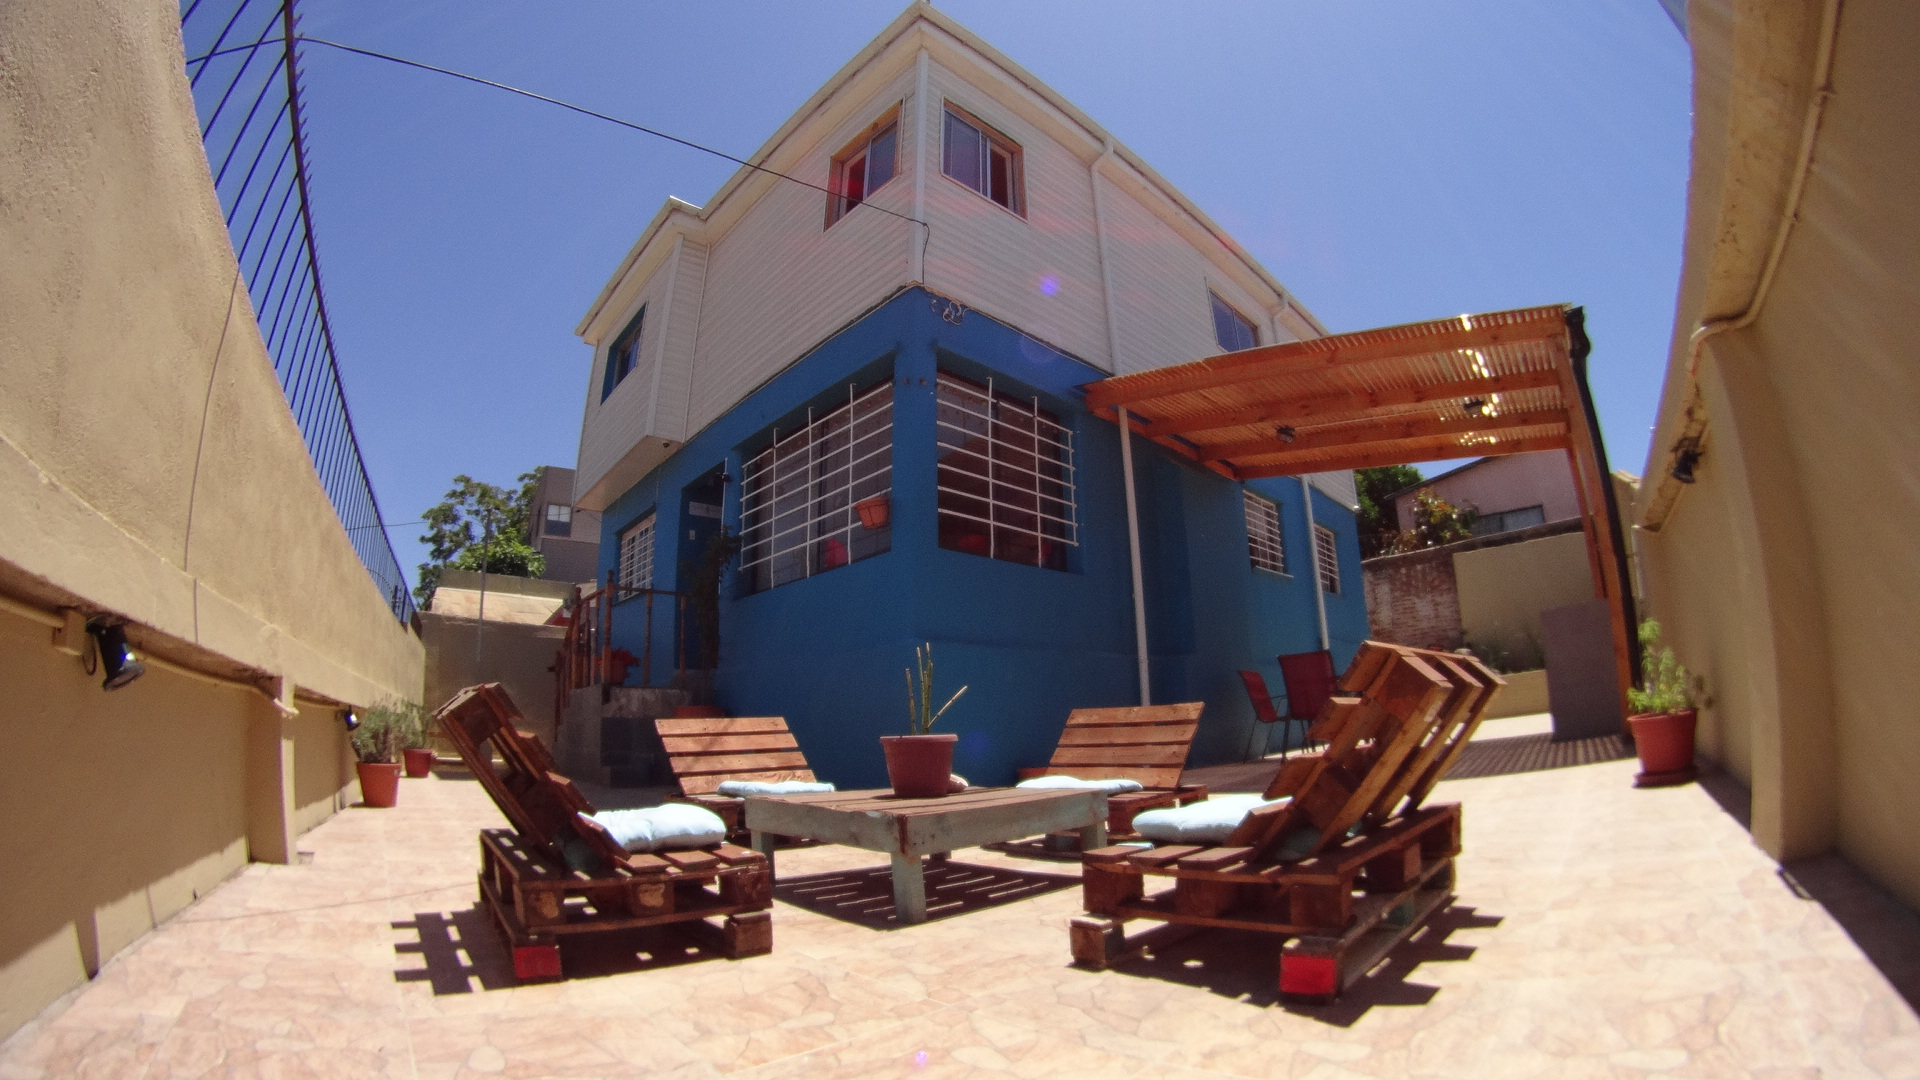 Chile Top Hostels An Hostel S Selection For Your Travel